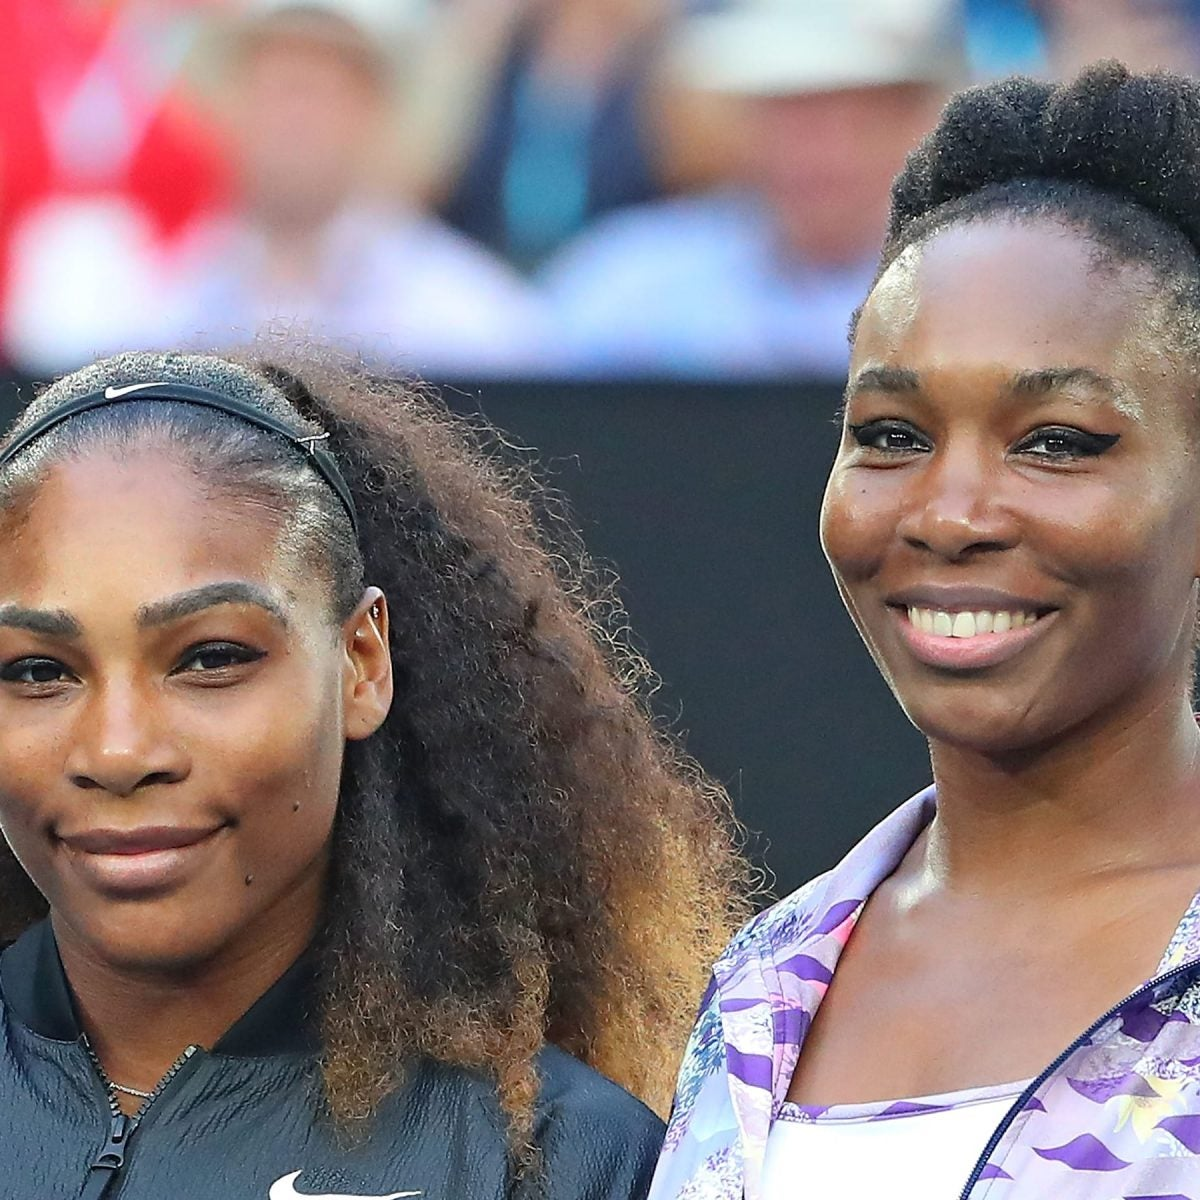 Serena Williams Withdraws From U.S. Open Due To Injury